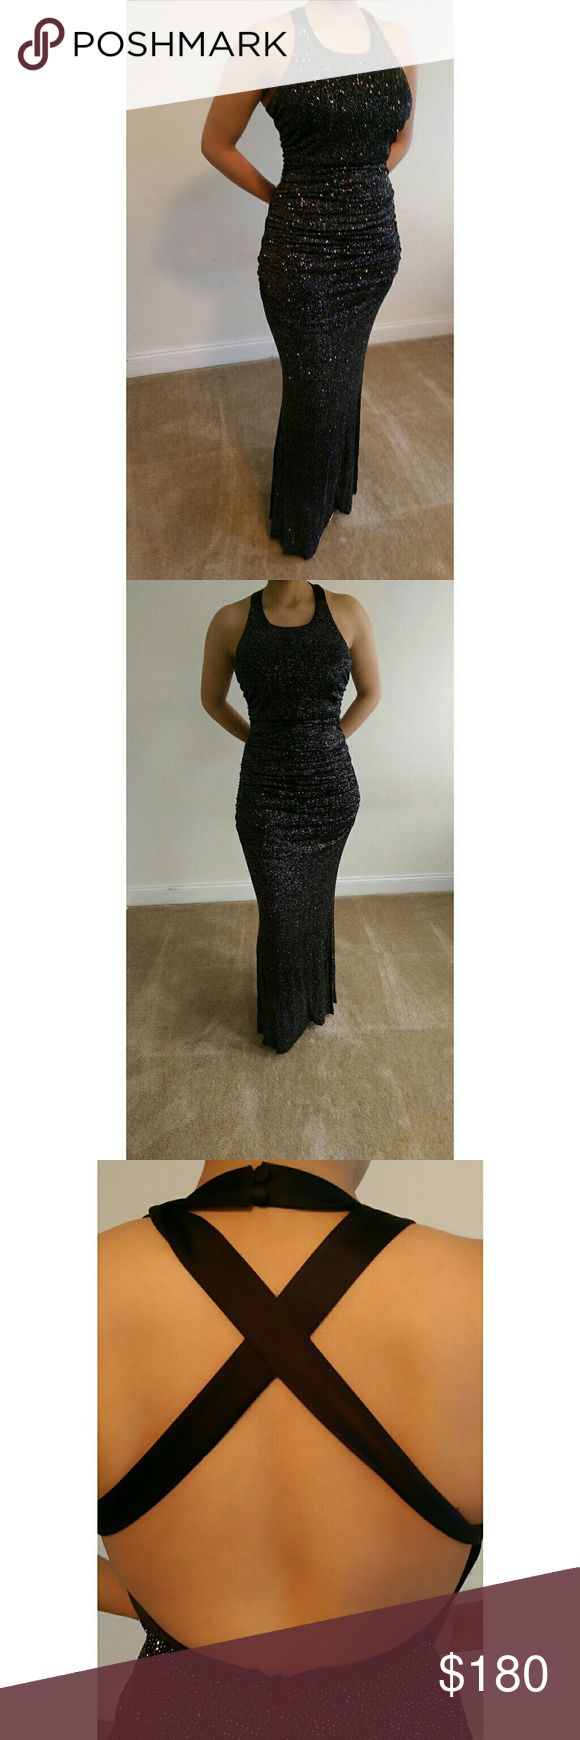 Sparkling Gown Sparkling Gown. Black + Stretch. Hugs your curves. Fits sizes 8/ 10 and 11. For questions and concerns pls comment. More information available apon request Dresses